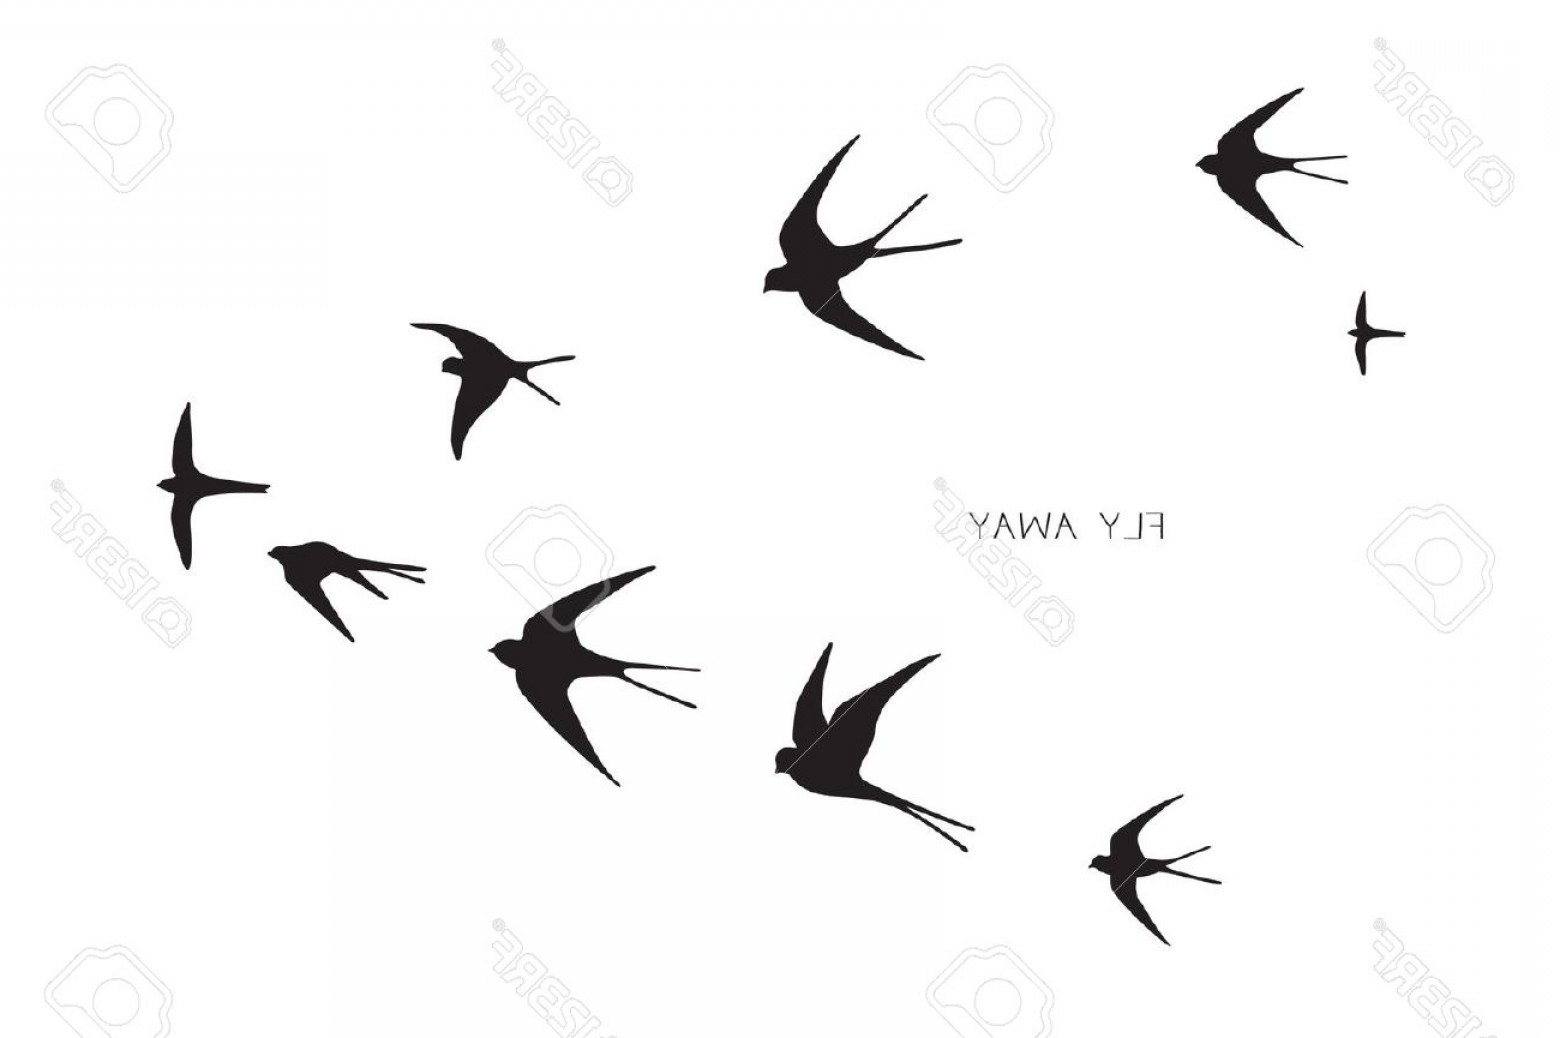 Swallow Vector: Photostock Vector Flock Of Birds Silhouette Swallow Vector Illustration